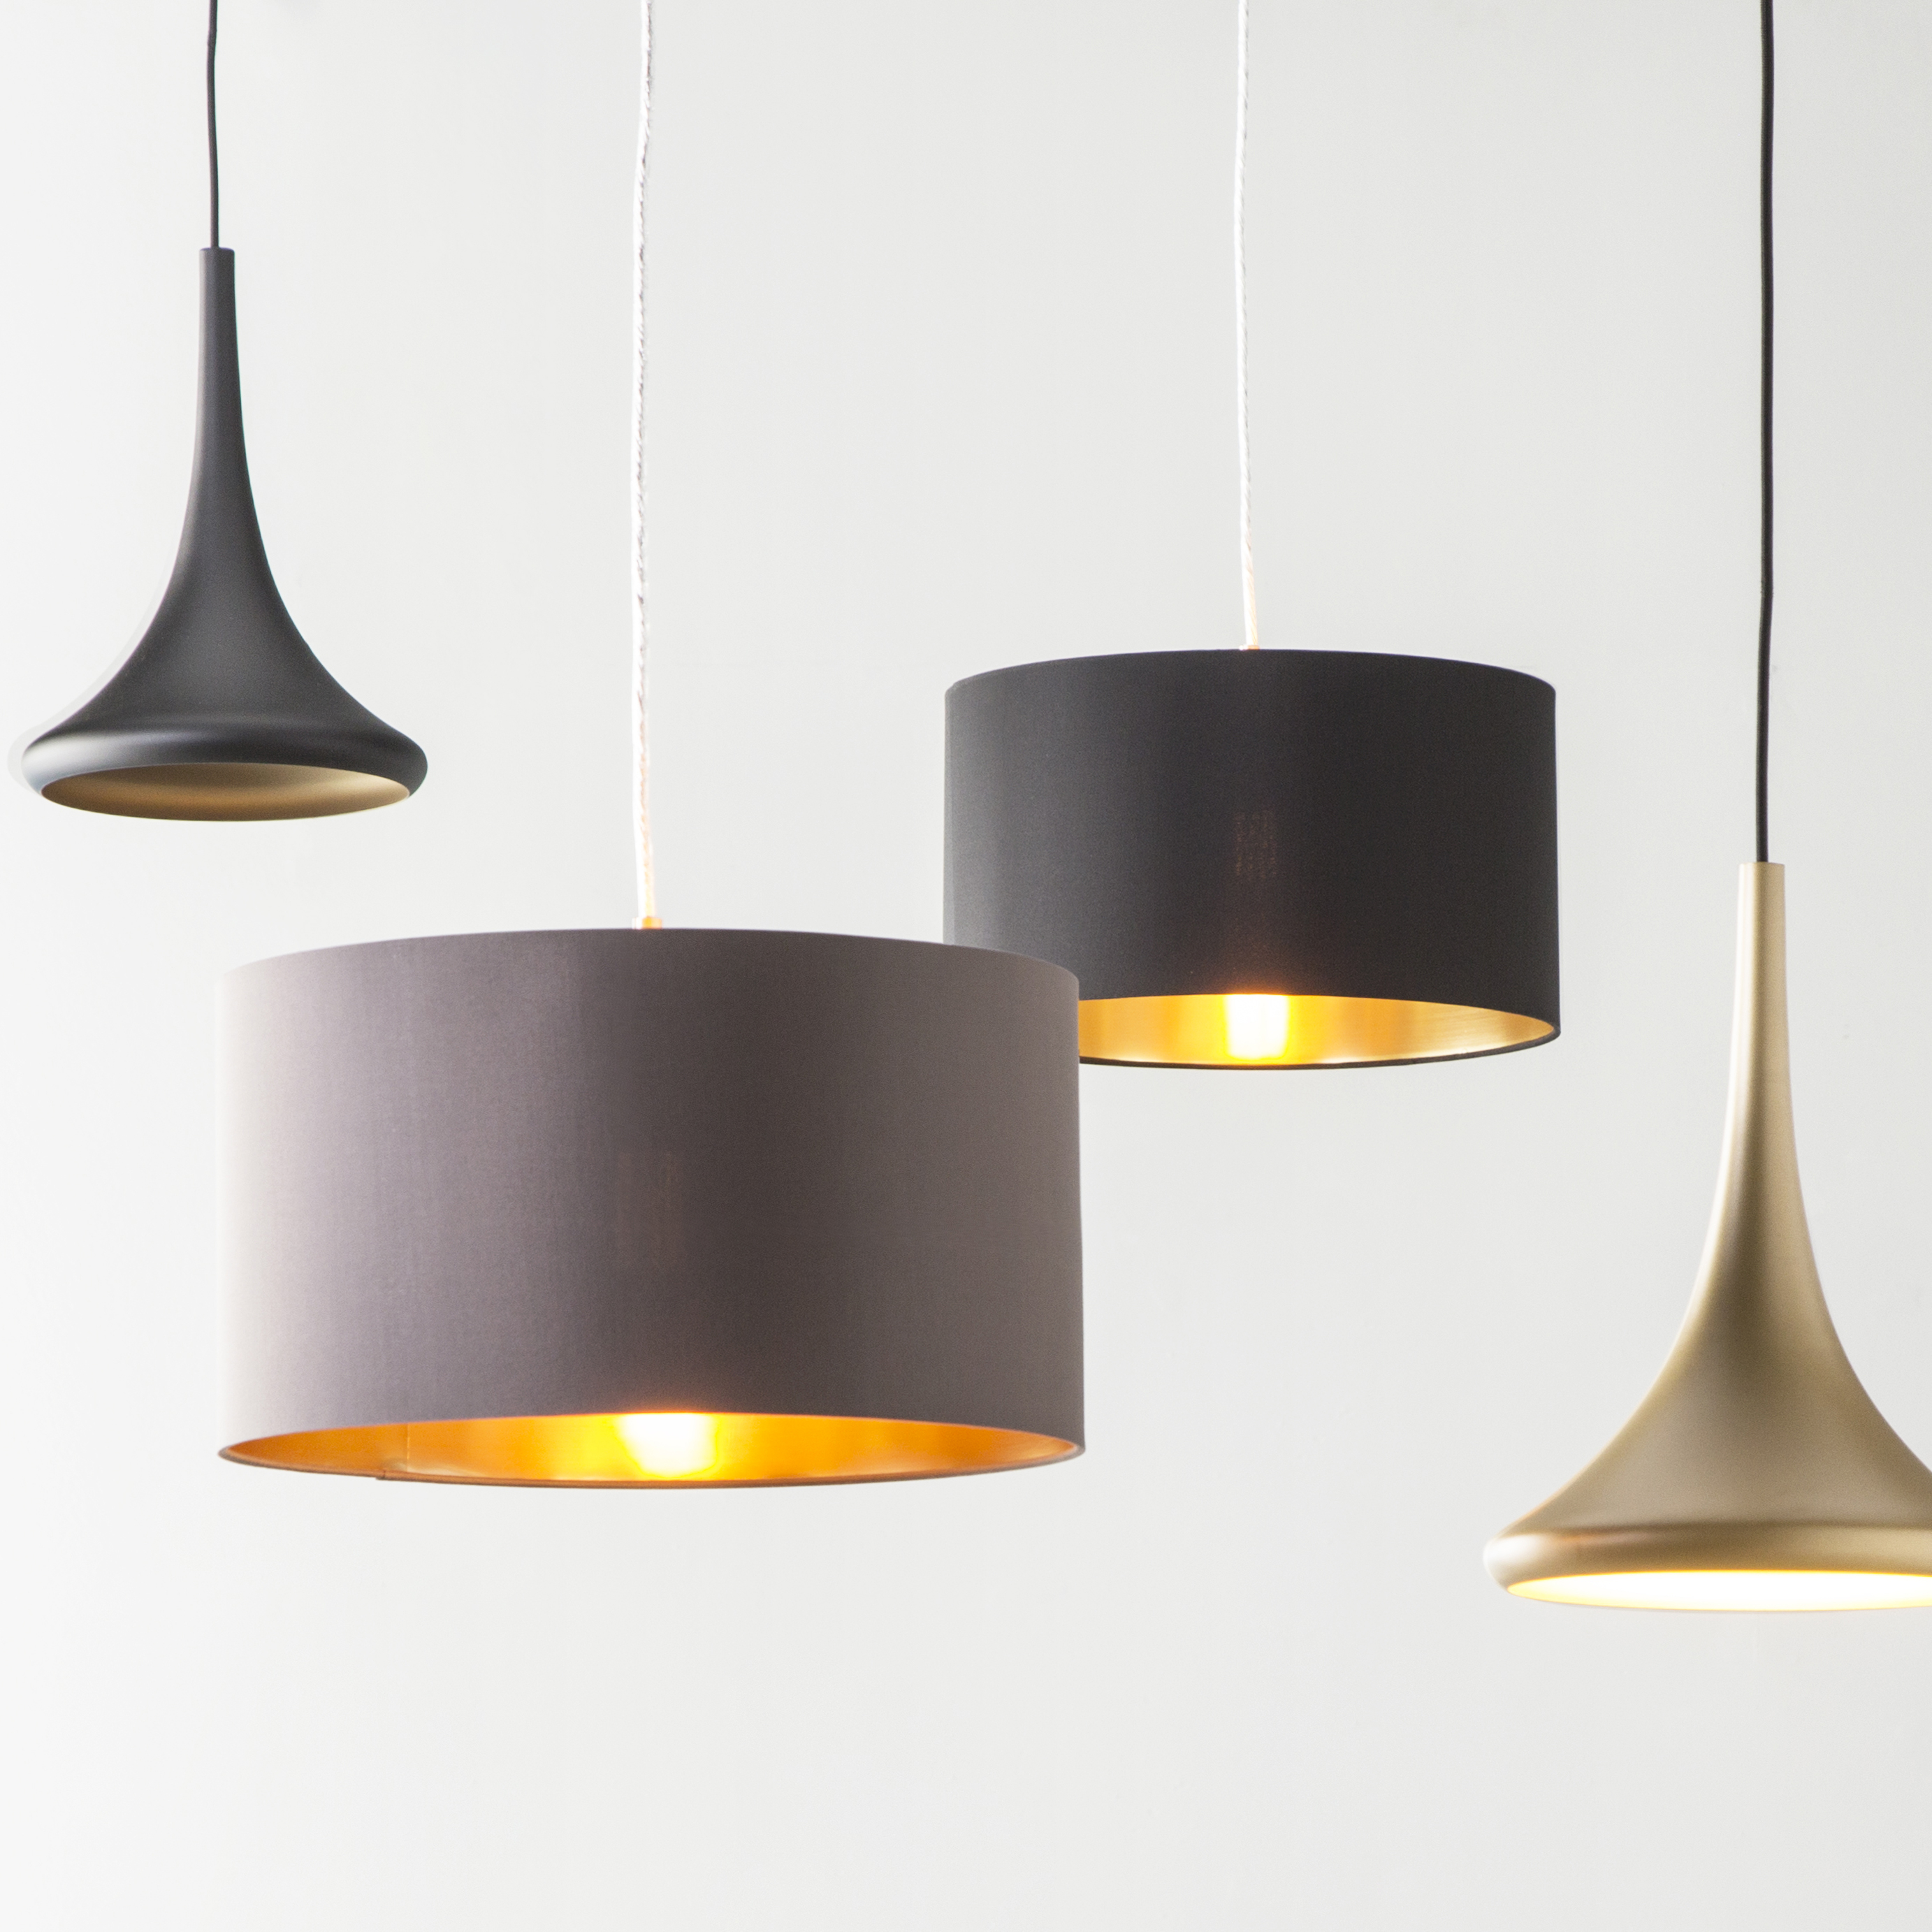 Modern & Contemporary Ceiling Lights | Allmodern With Regard To Bryker 1 Light Single Bulb Pendants (View 21 of 30)